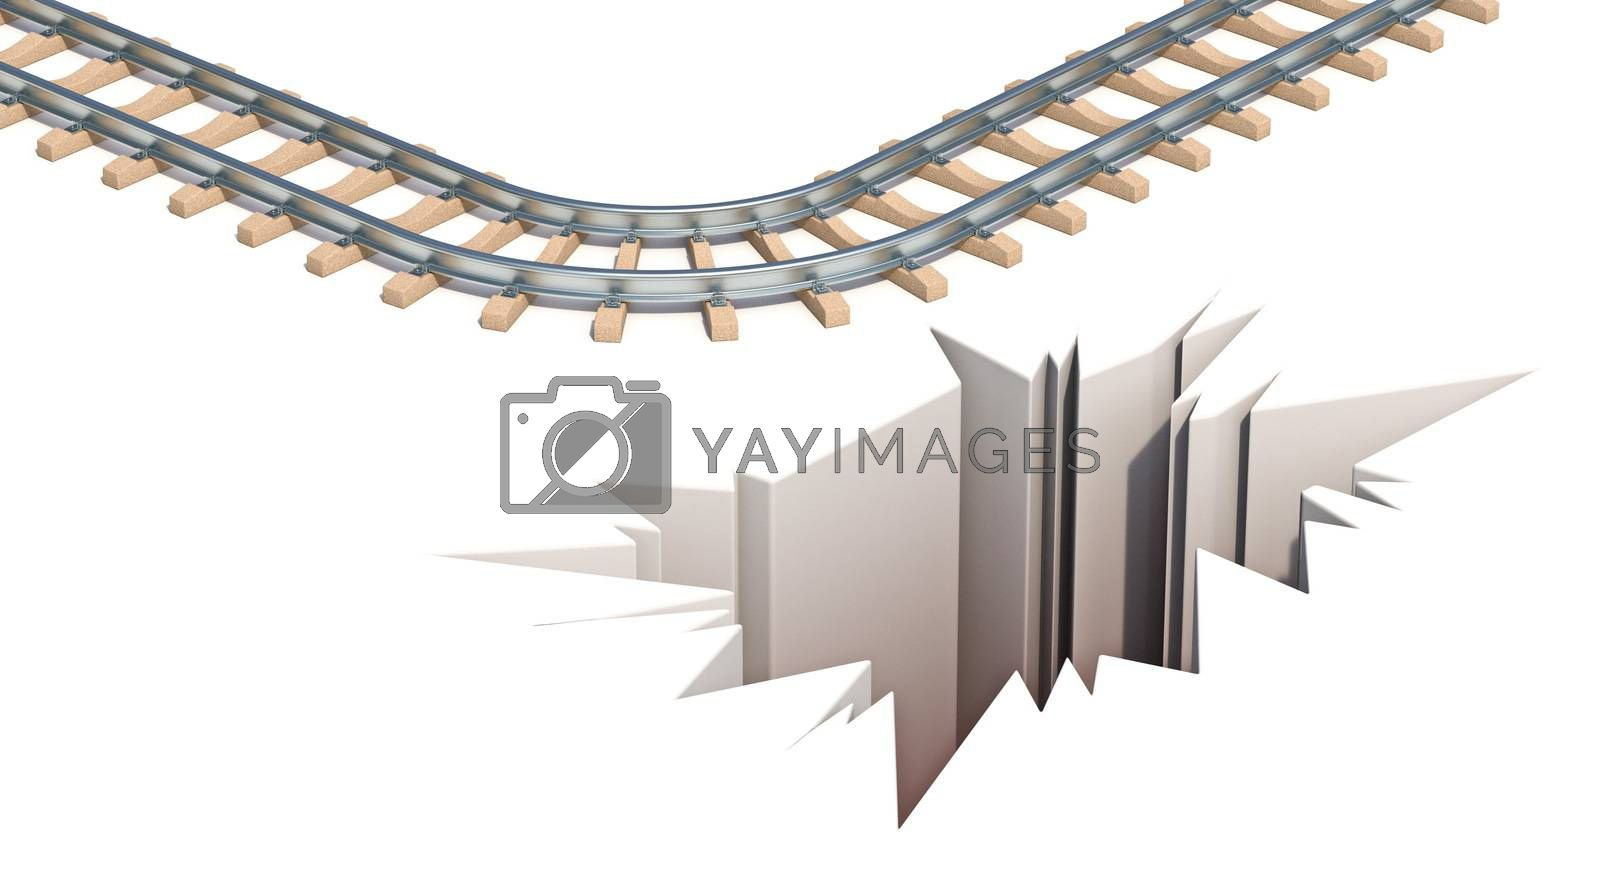 Railway escape hole 3D render illustration isolated on white background